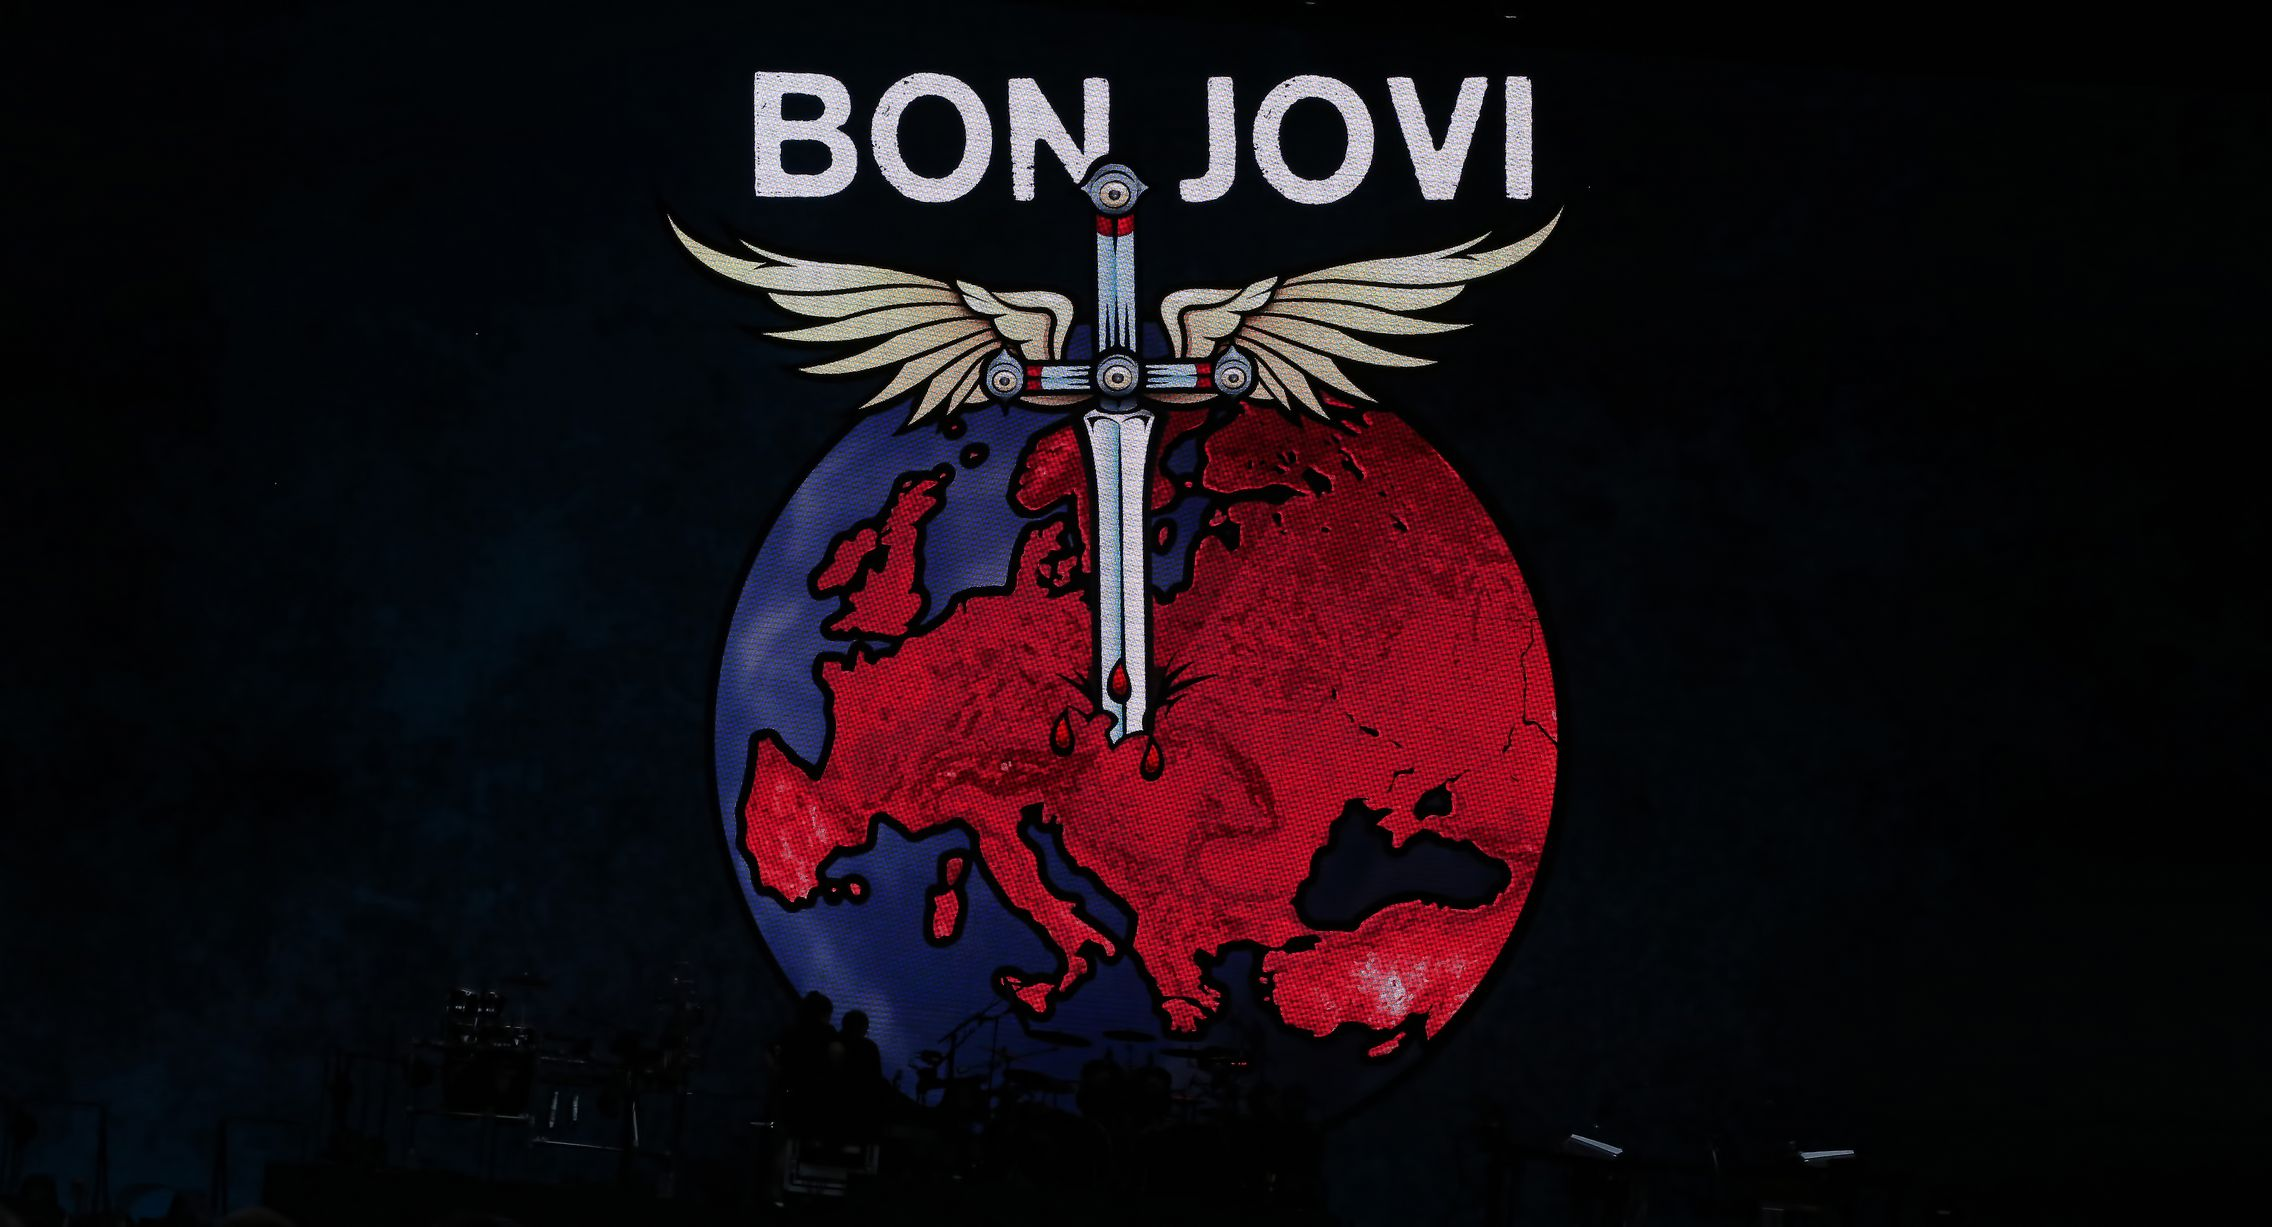 bon jovi at the